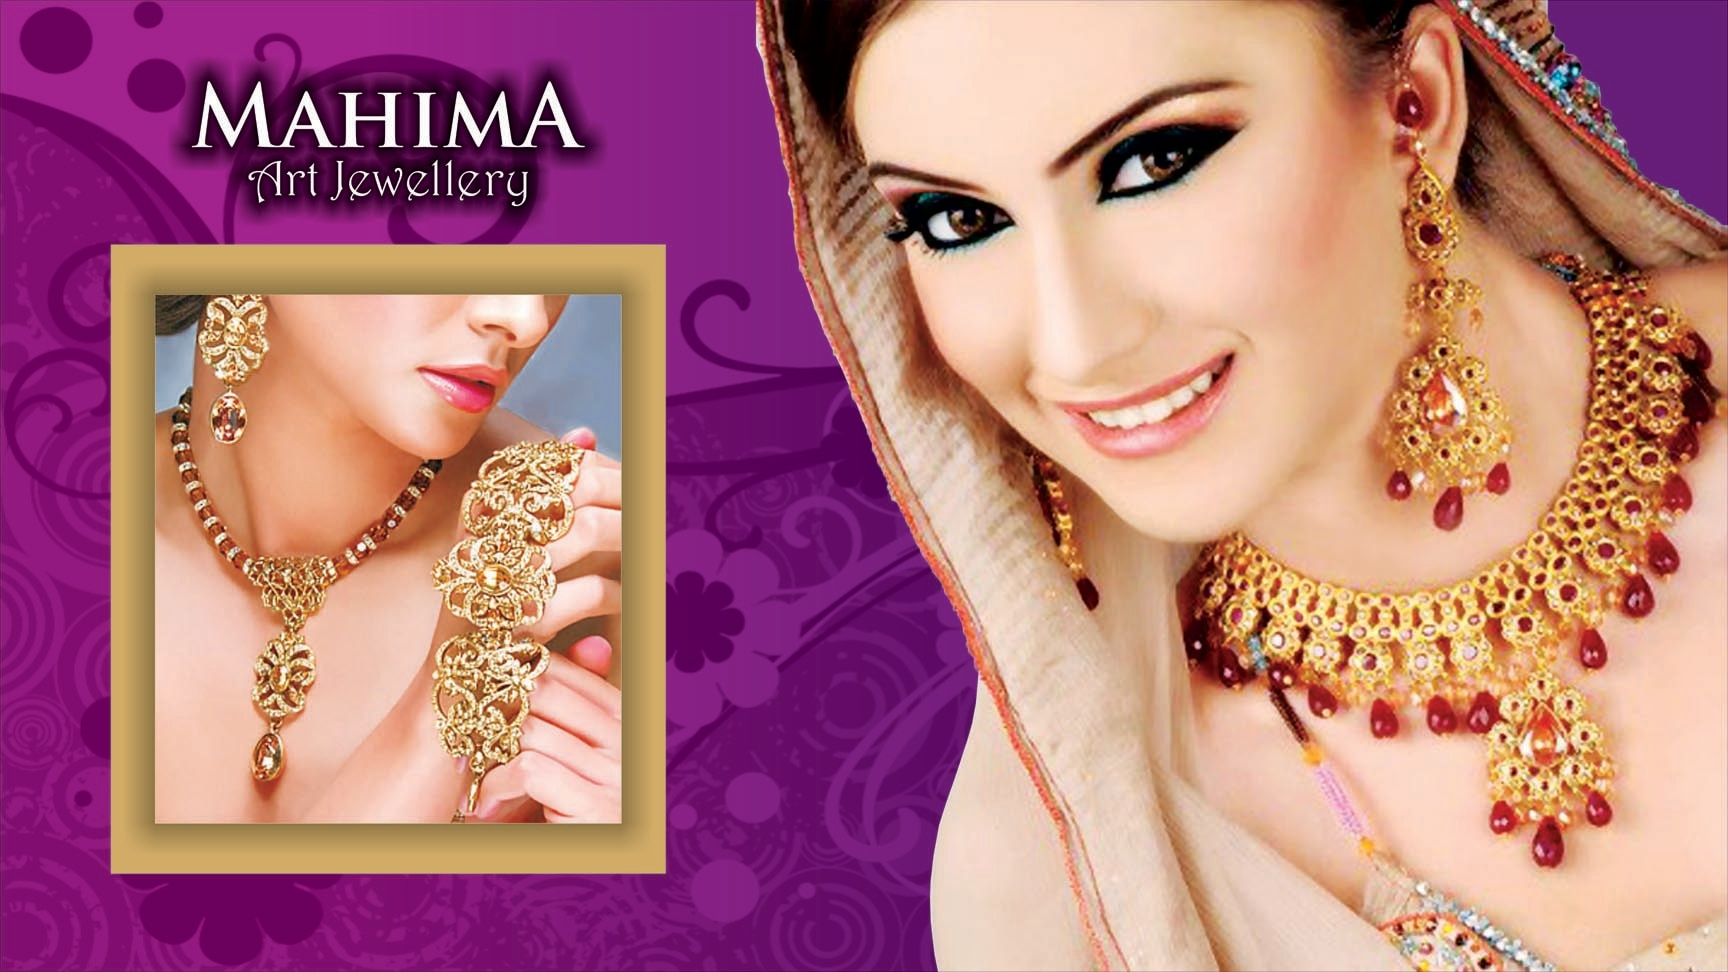 MAHIMA ART JEWELLERY